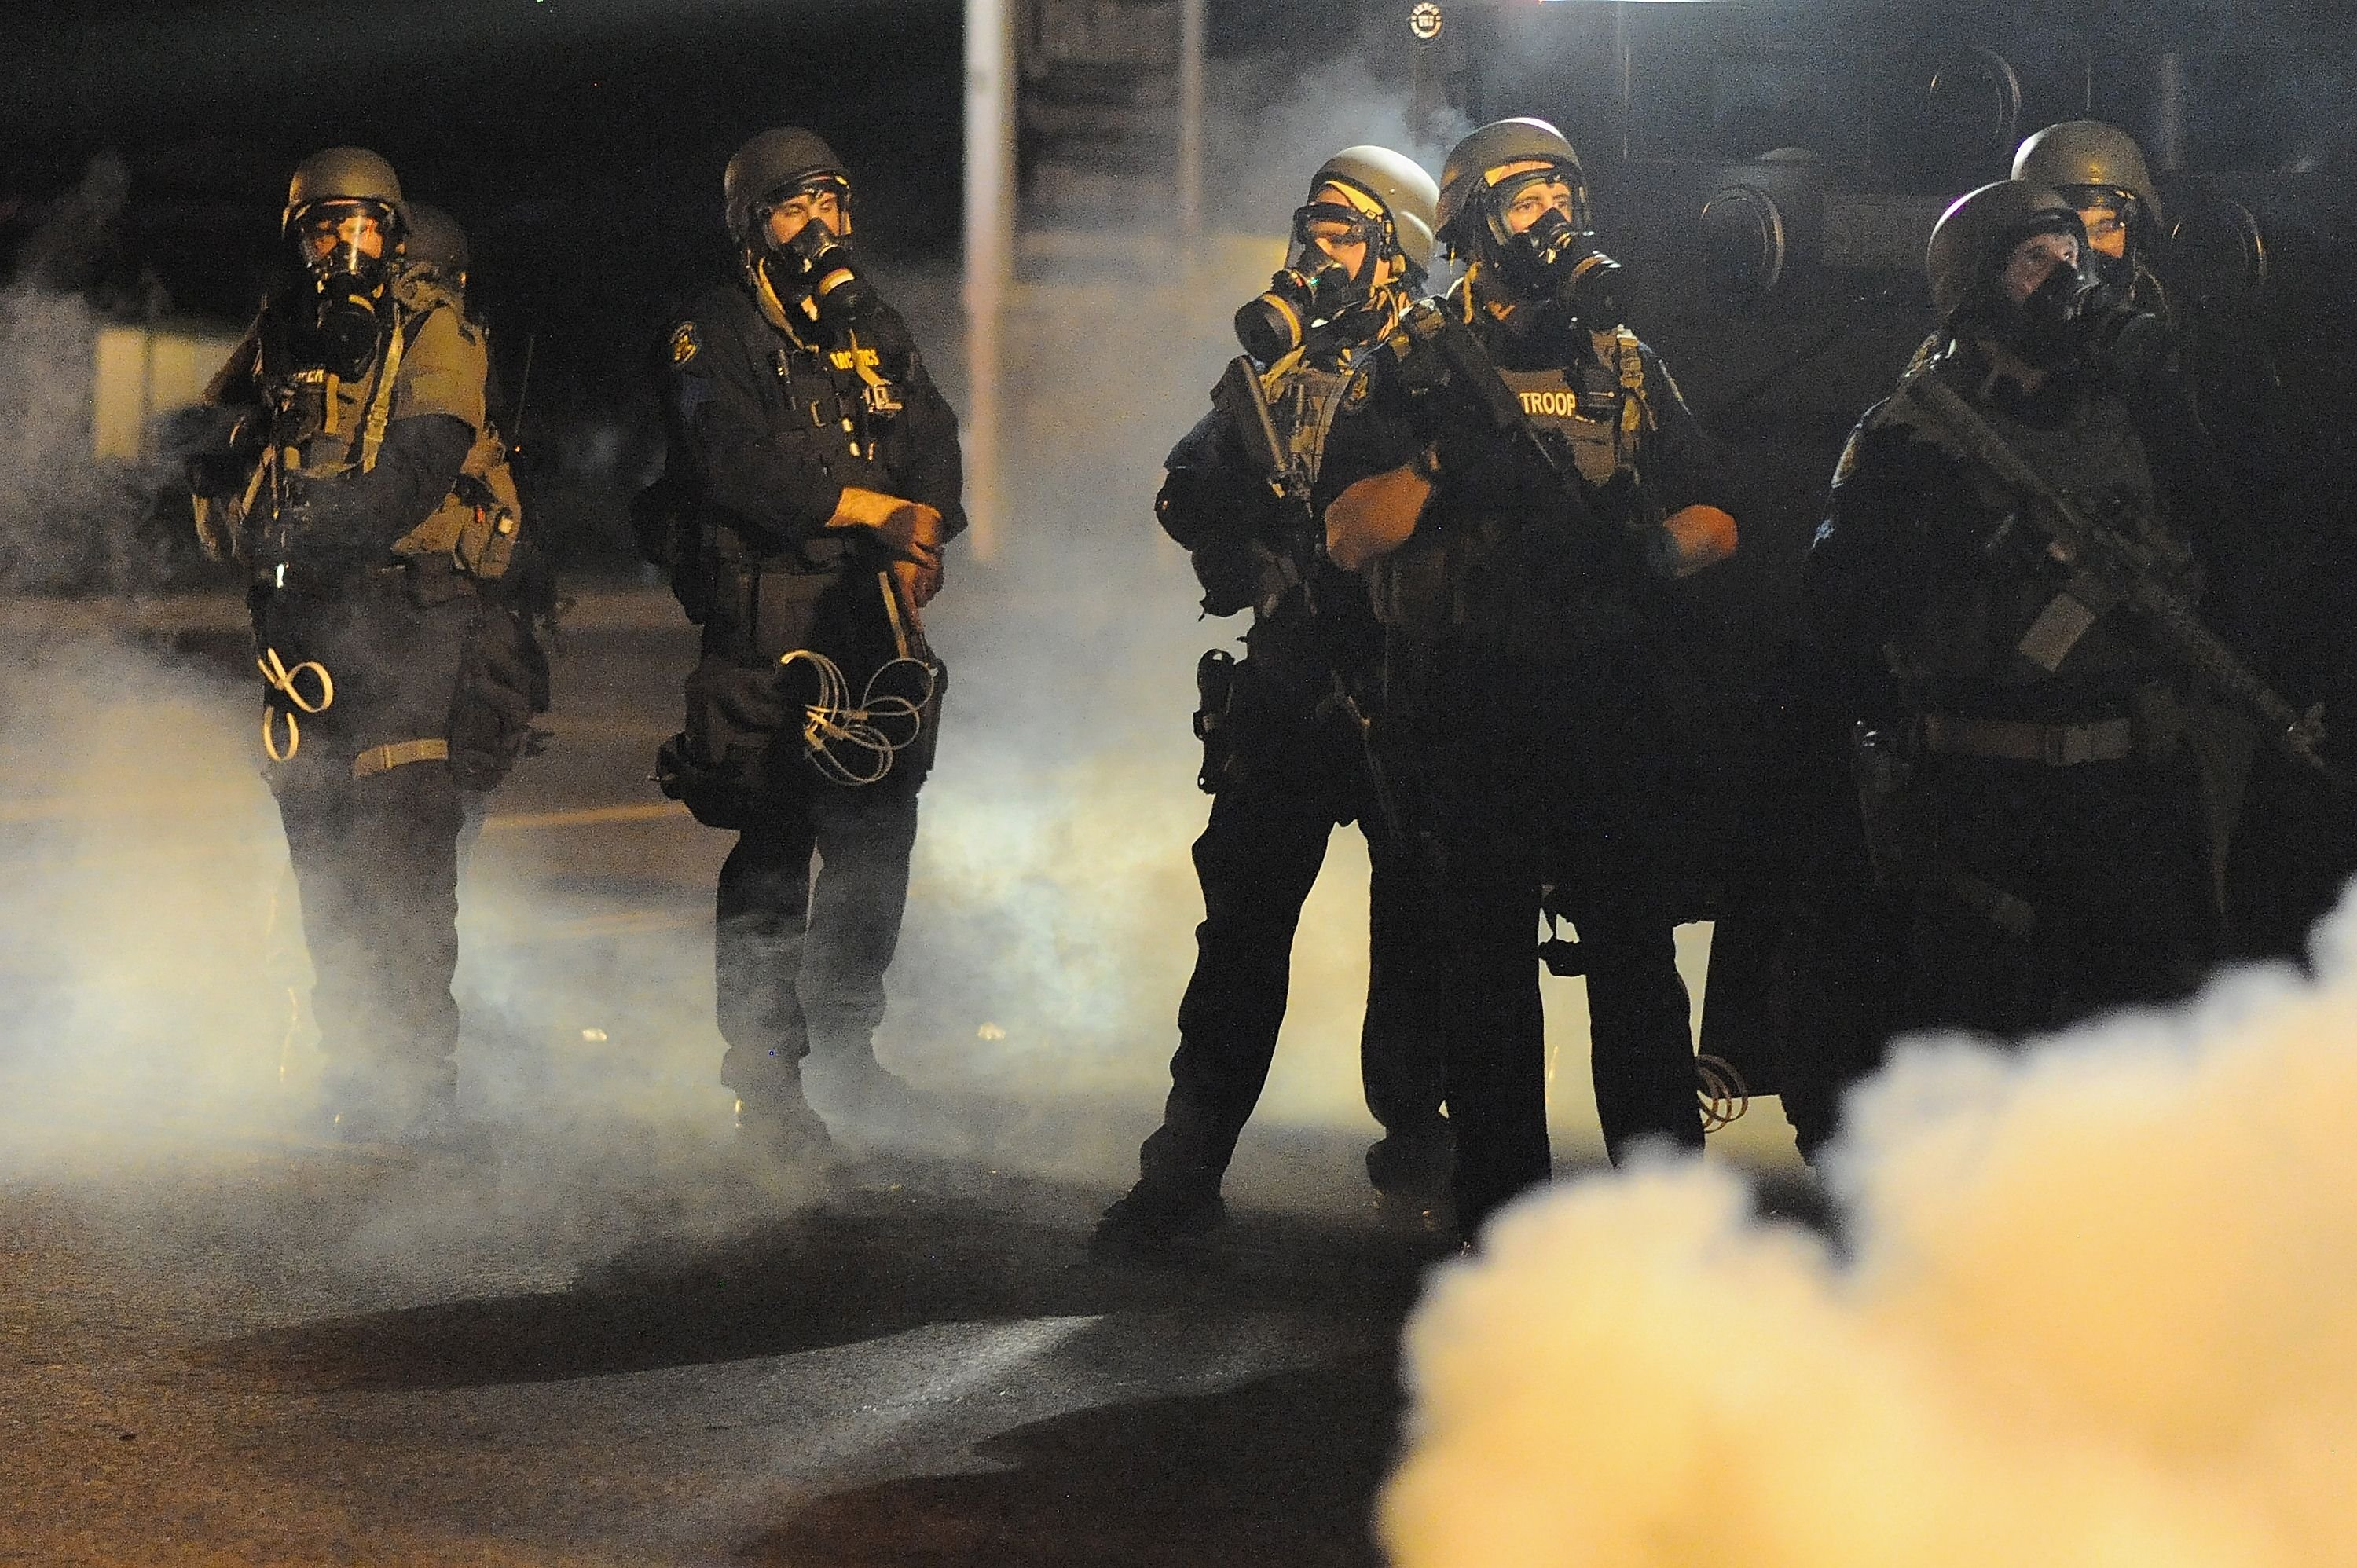 Law enforcement officers watch on during a protest on West Florissant Avenue in Ferguson, Mo. on Aug. 18, 2014.